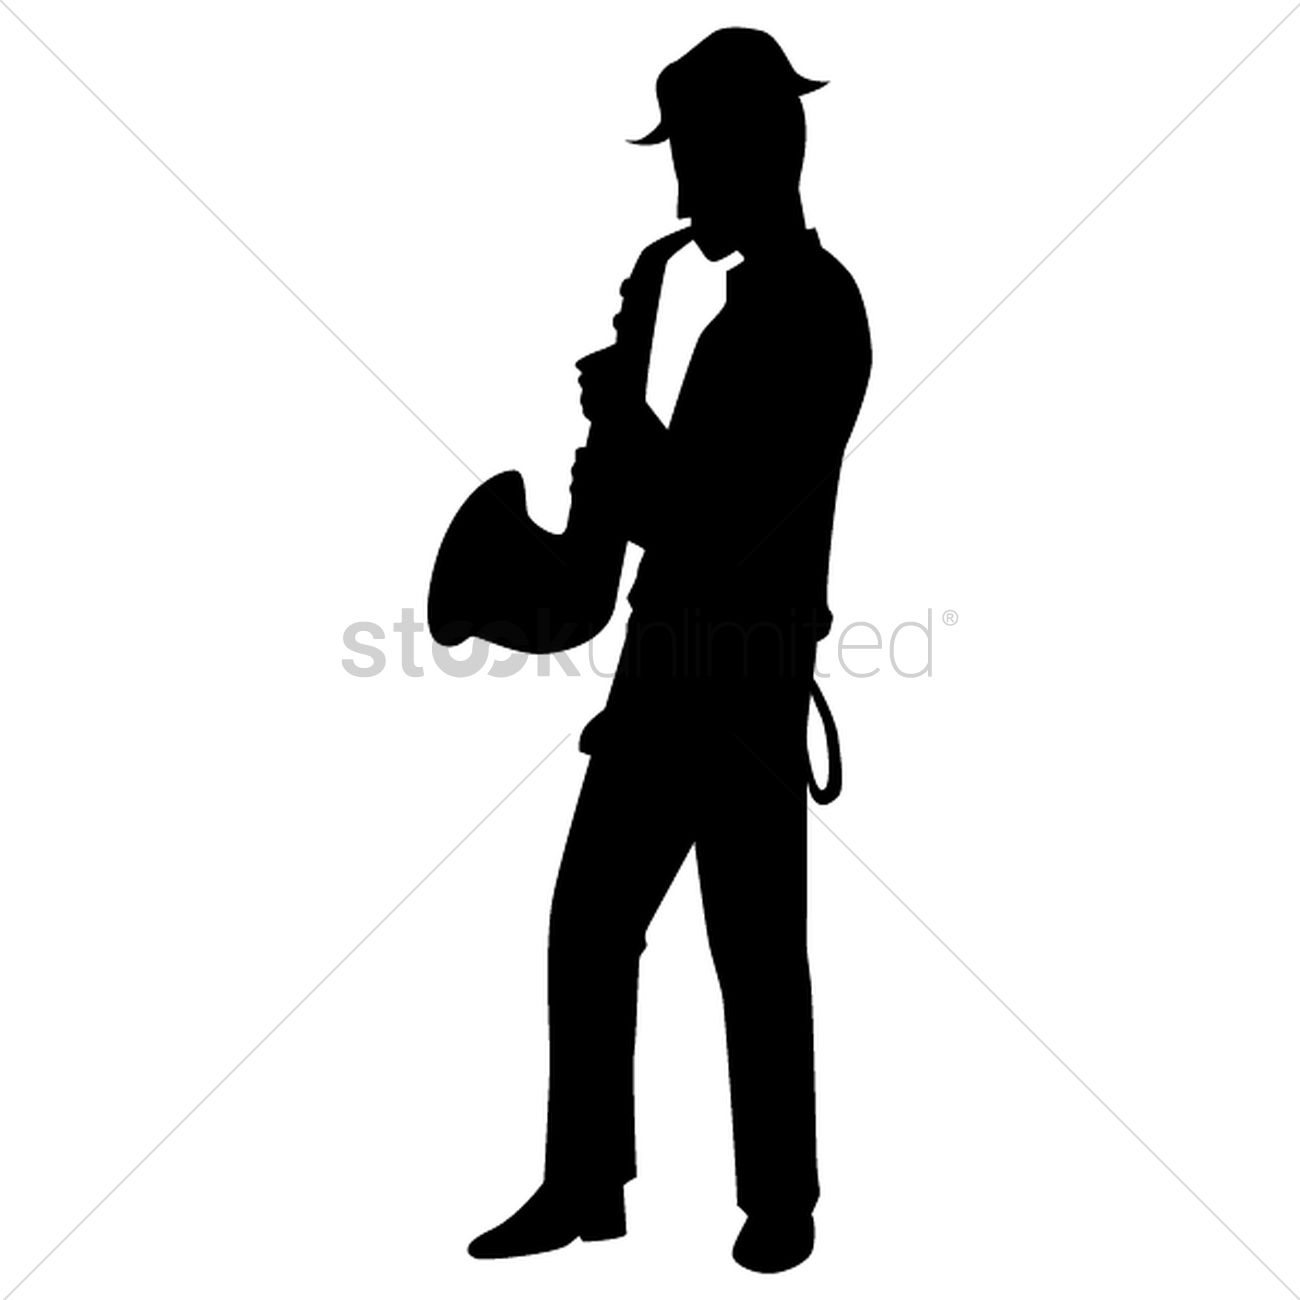 1300x1300 Silhouette Of Man Playing Saxophone Vector Image